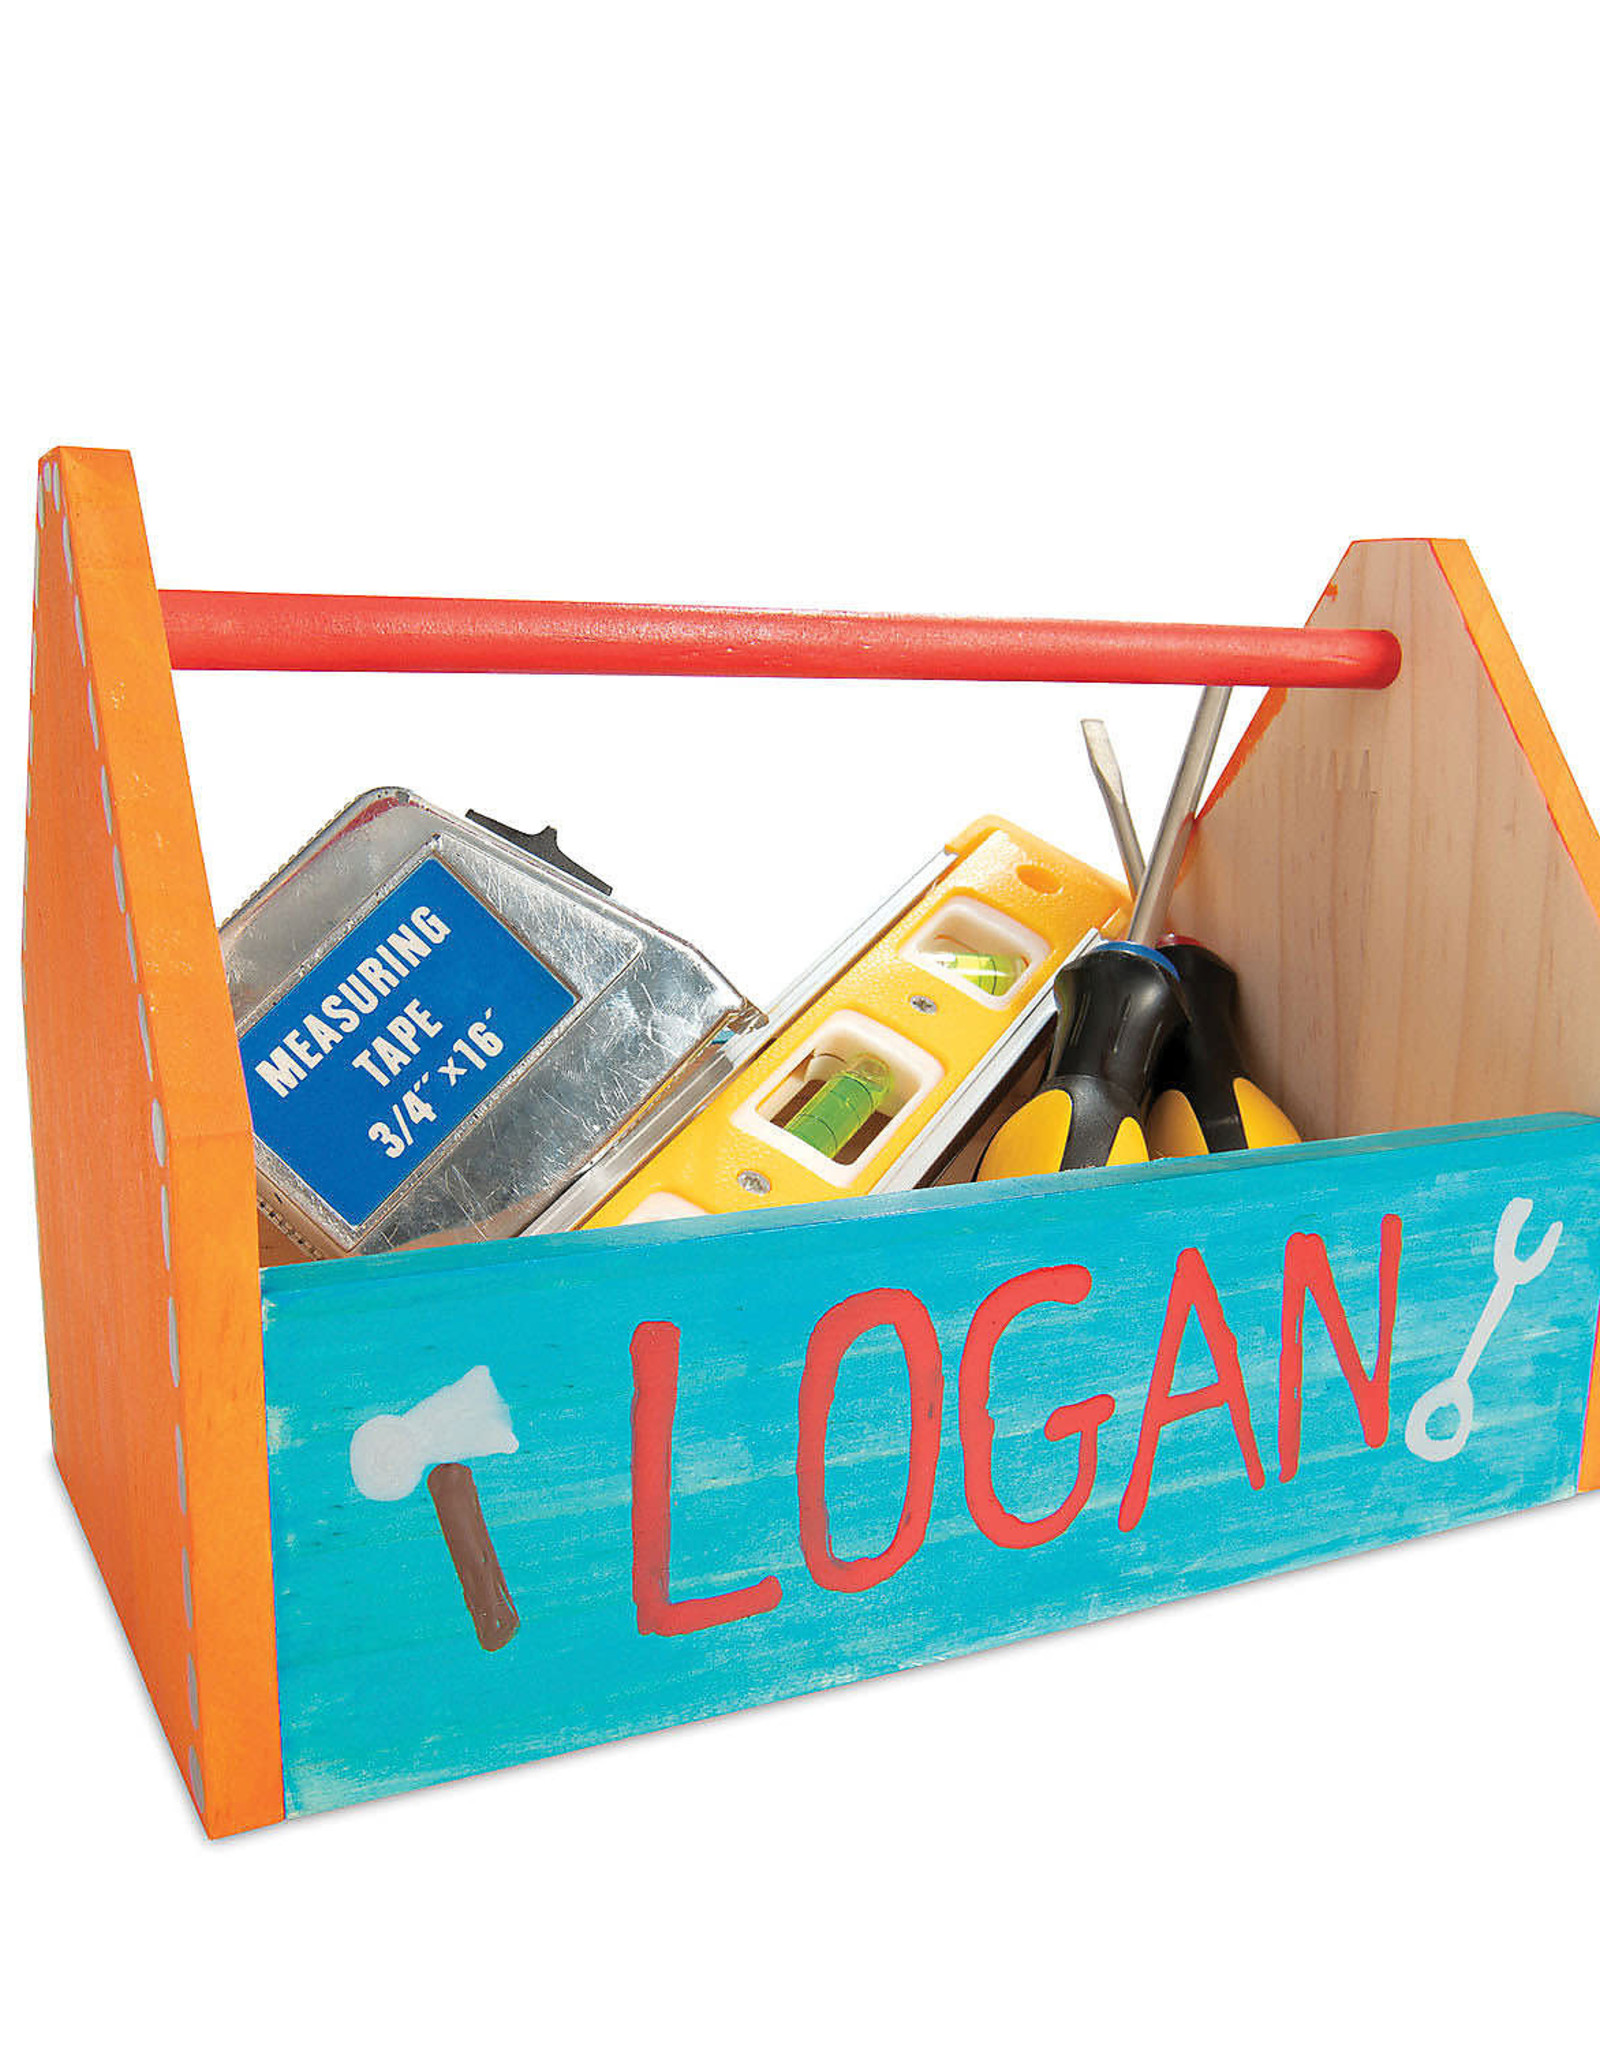 MindWare Make Your Own Tool Box